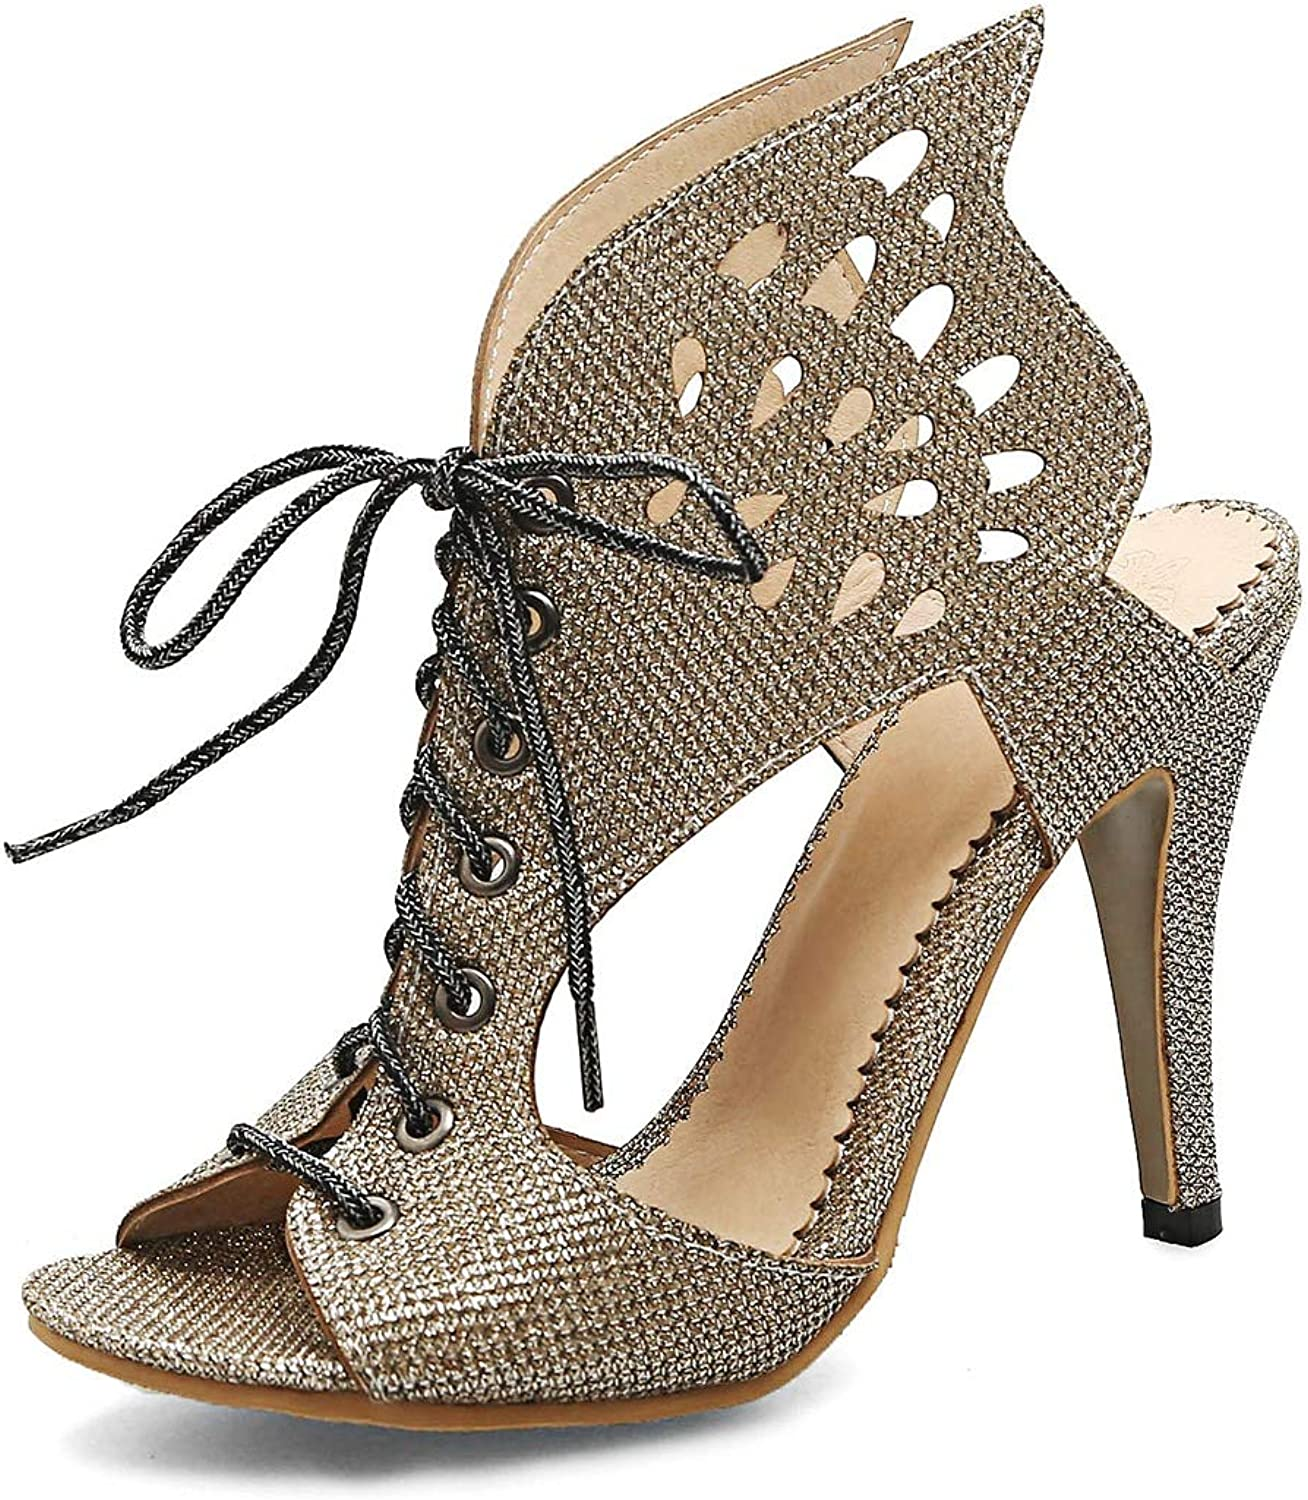 Mo Duo New Women high Heel Sandals Leaf Flame Gladiator Sandal shoes Party Dress shoes Woman